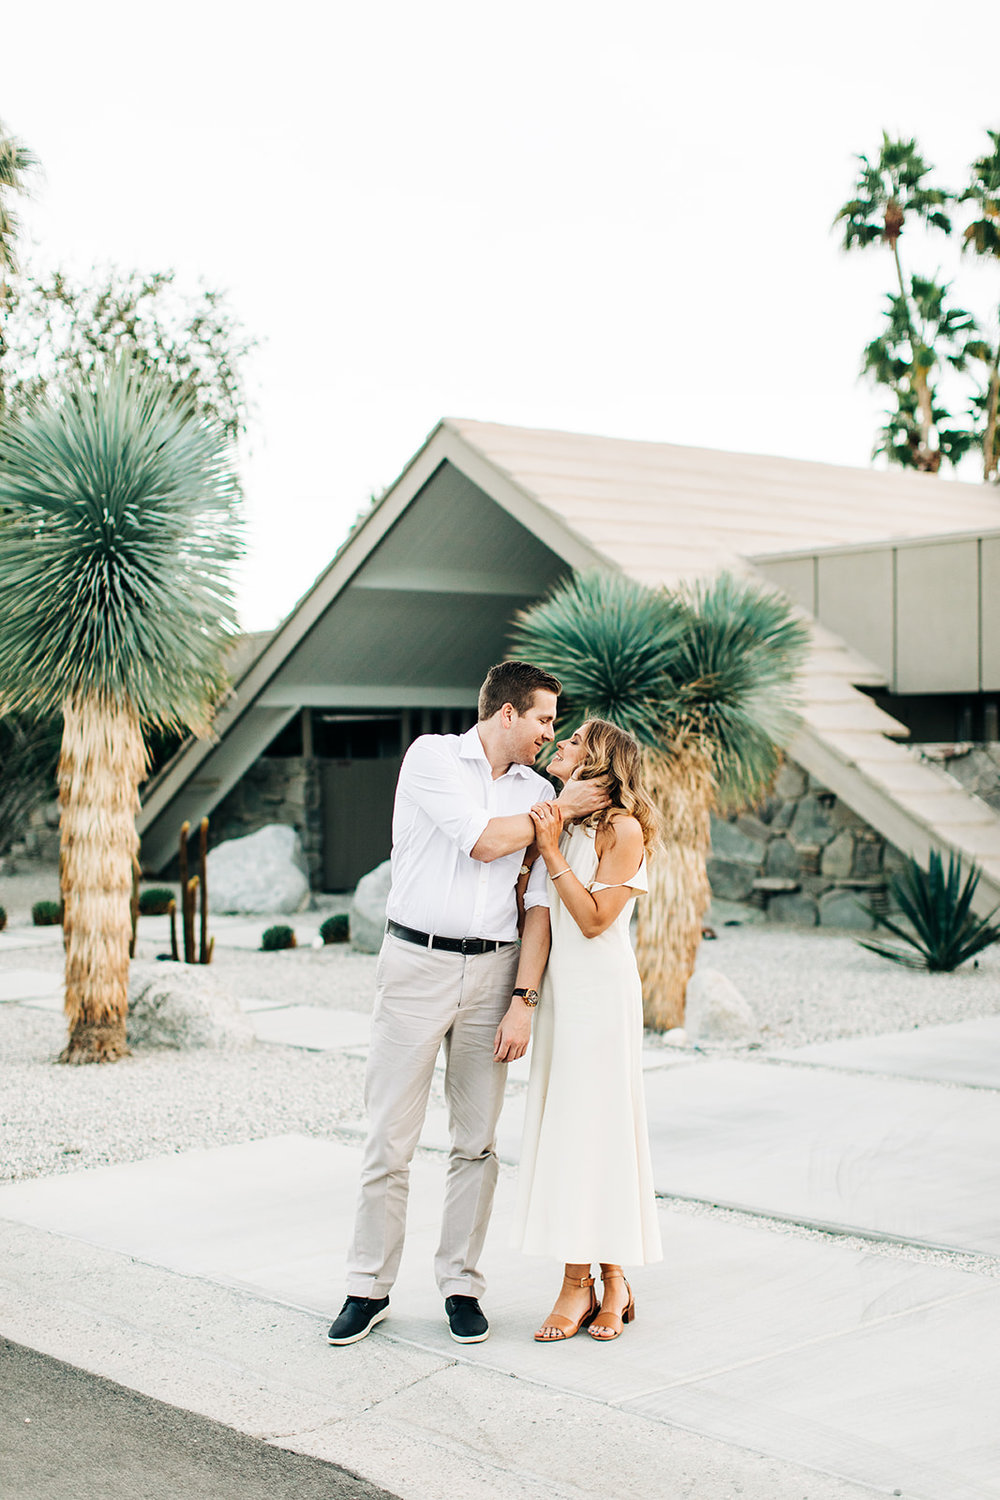 Paulina-Drew_Palm-Springs-Engagement-Photos_Clarisse-Rae_Southern-California-Wedding-Photographer-39